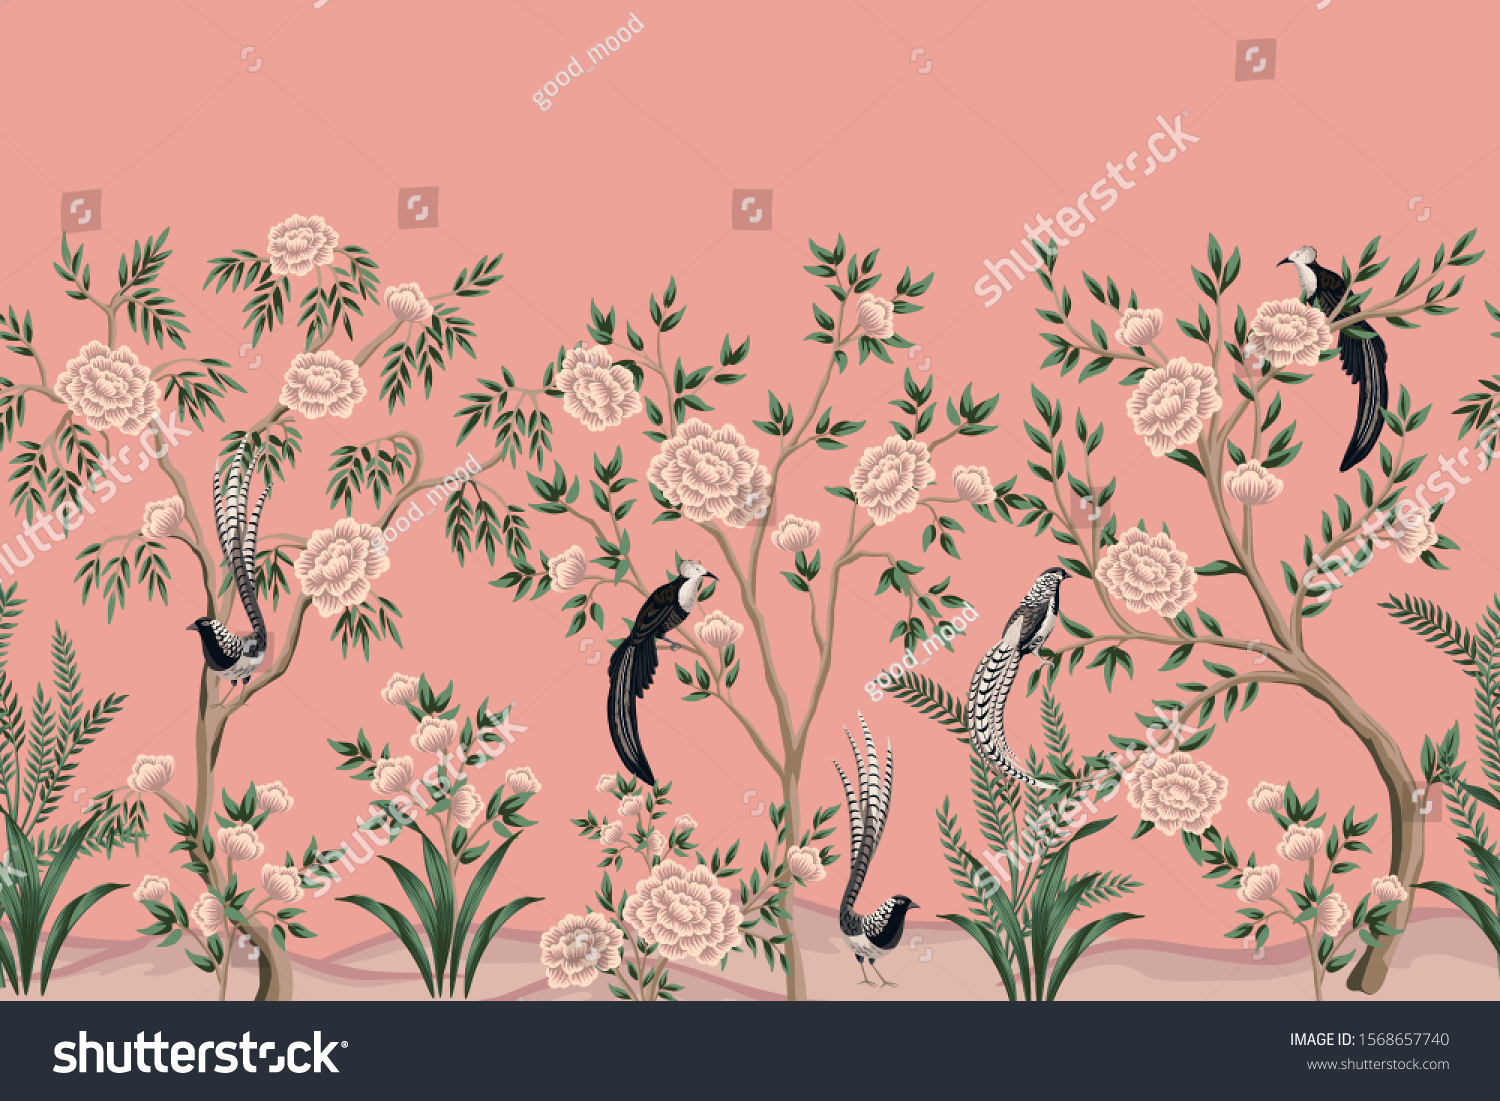 Vintage Chinoiserie Floral Rose Tree Plant Stock Vector Royalty Free 1568657740